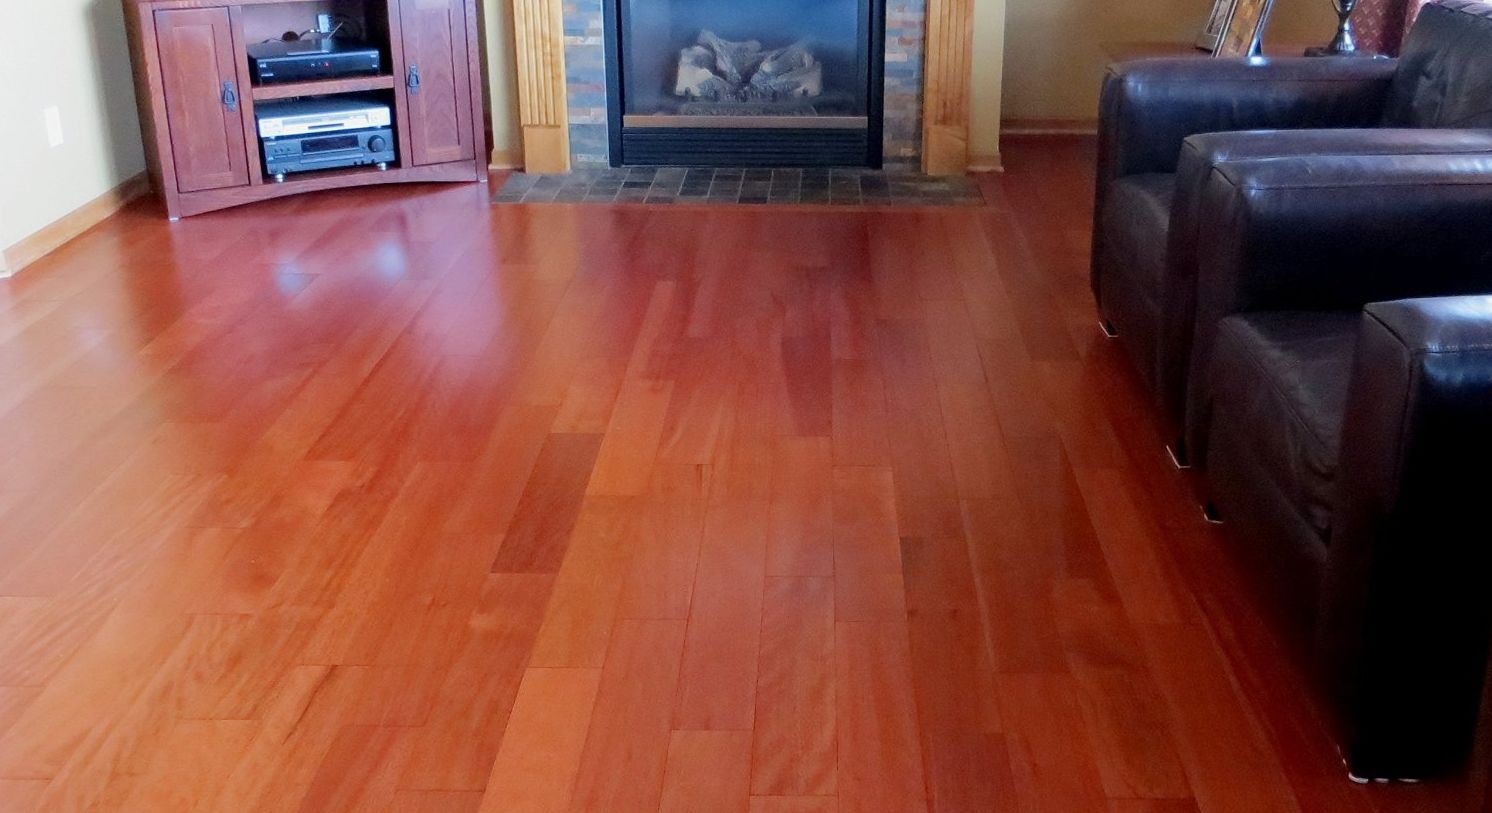 Malaccan cherry taun vs brazilian cherry flooring for Brazilian cherry flooring